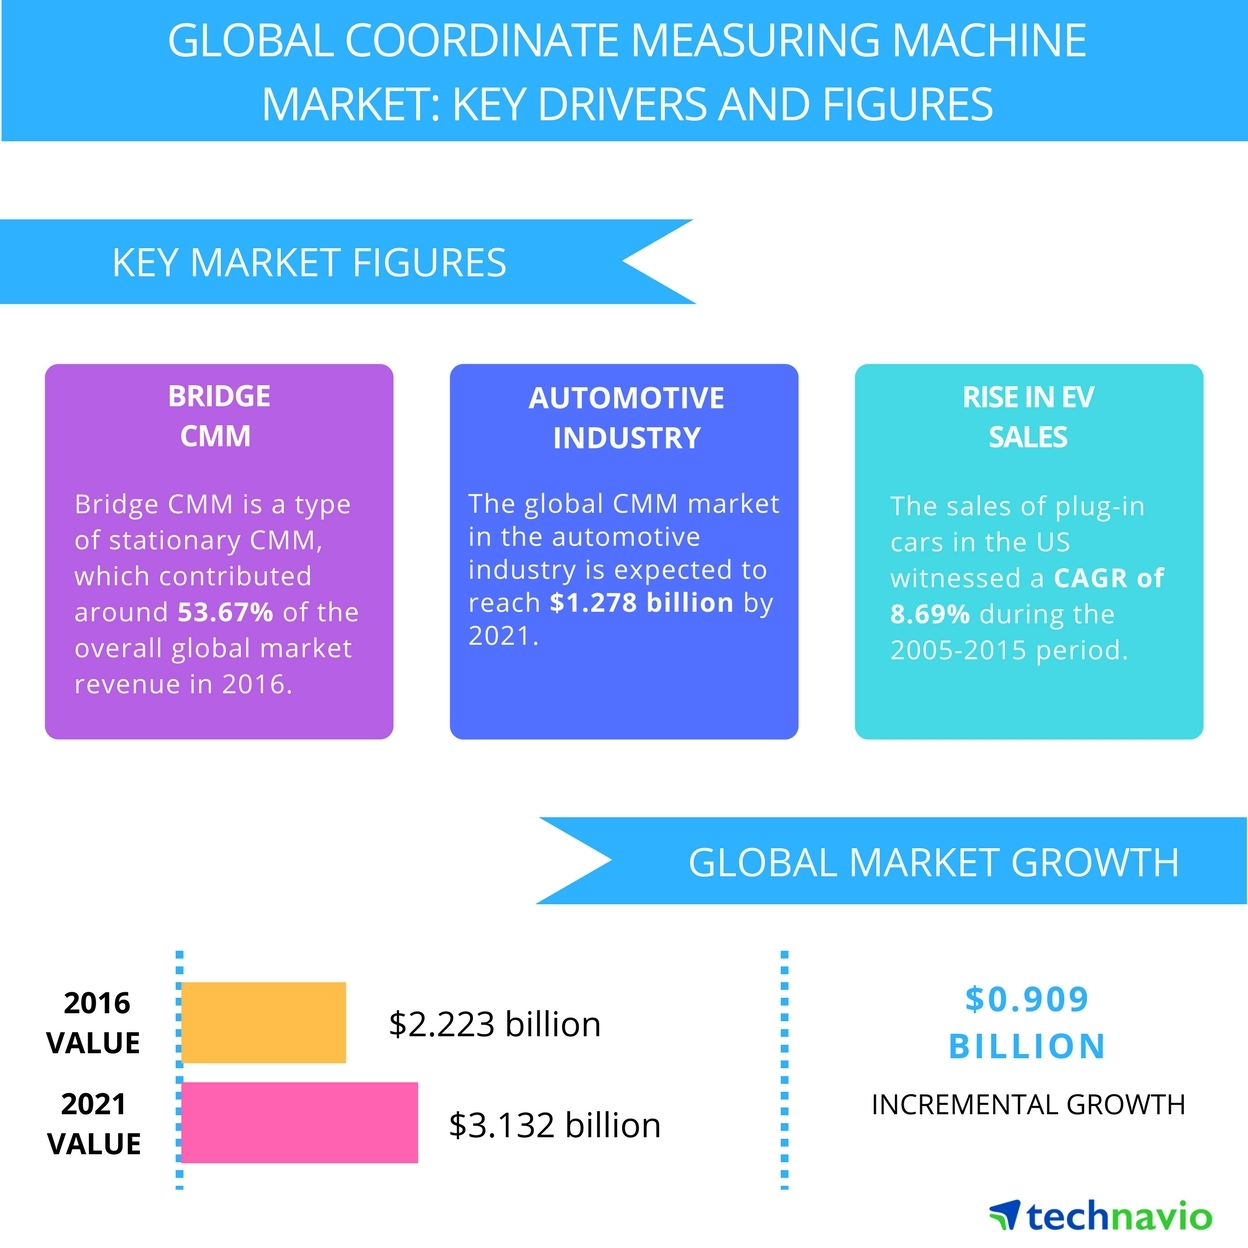 Technavio has published a new report on the global coordinate measuring machine market from 2017-2021. (Photo: Business Wire)